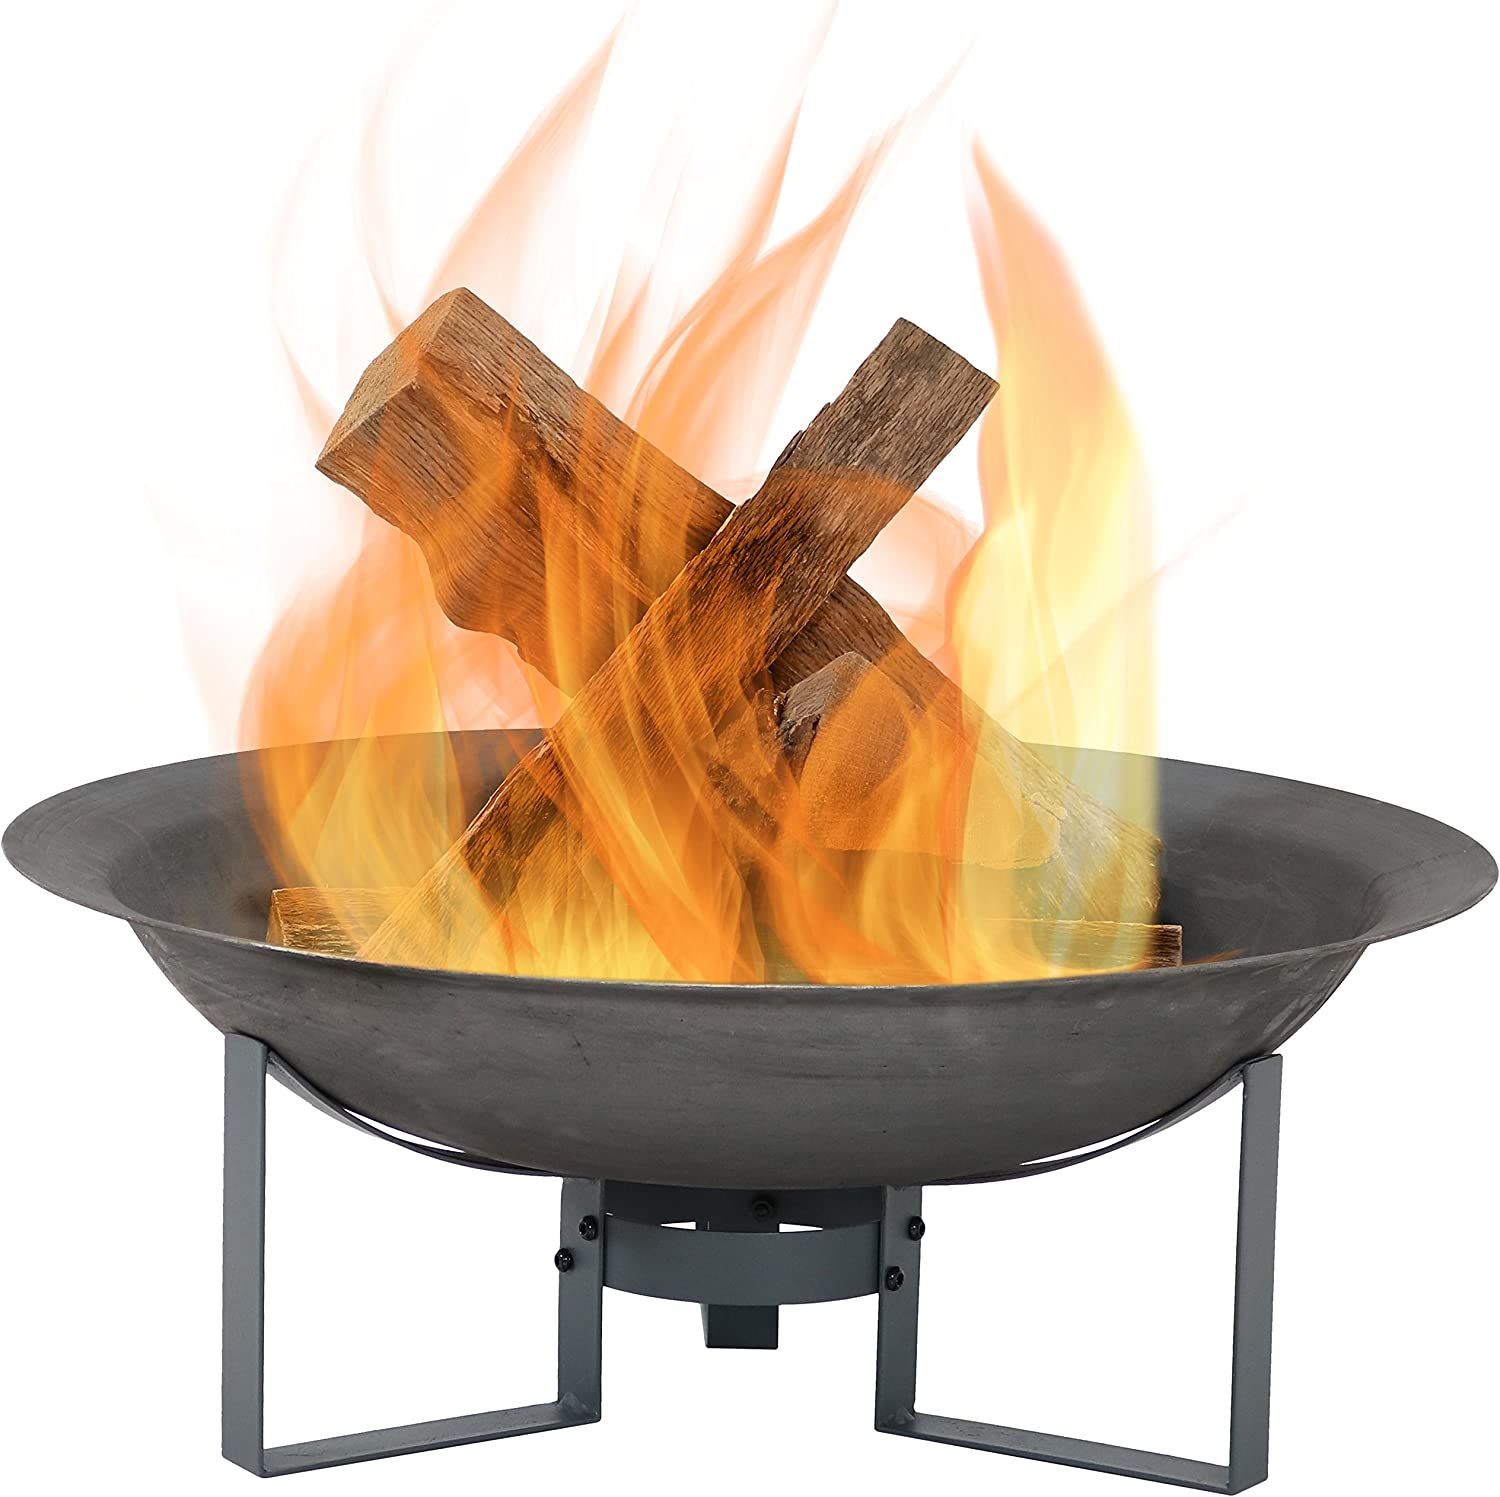 Sunnydaze Modern Fire Pit Bowl With Stand Portable Outdoor Wood